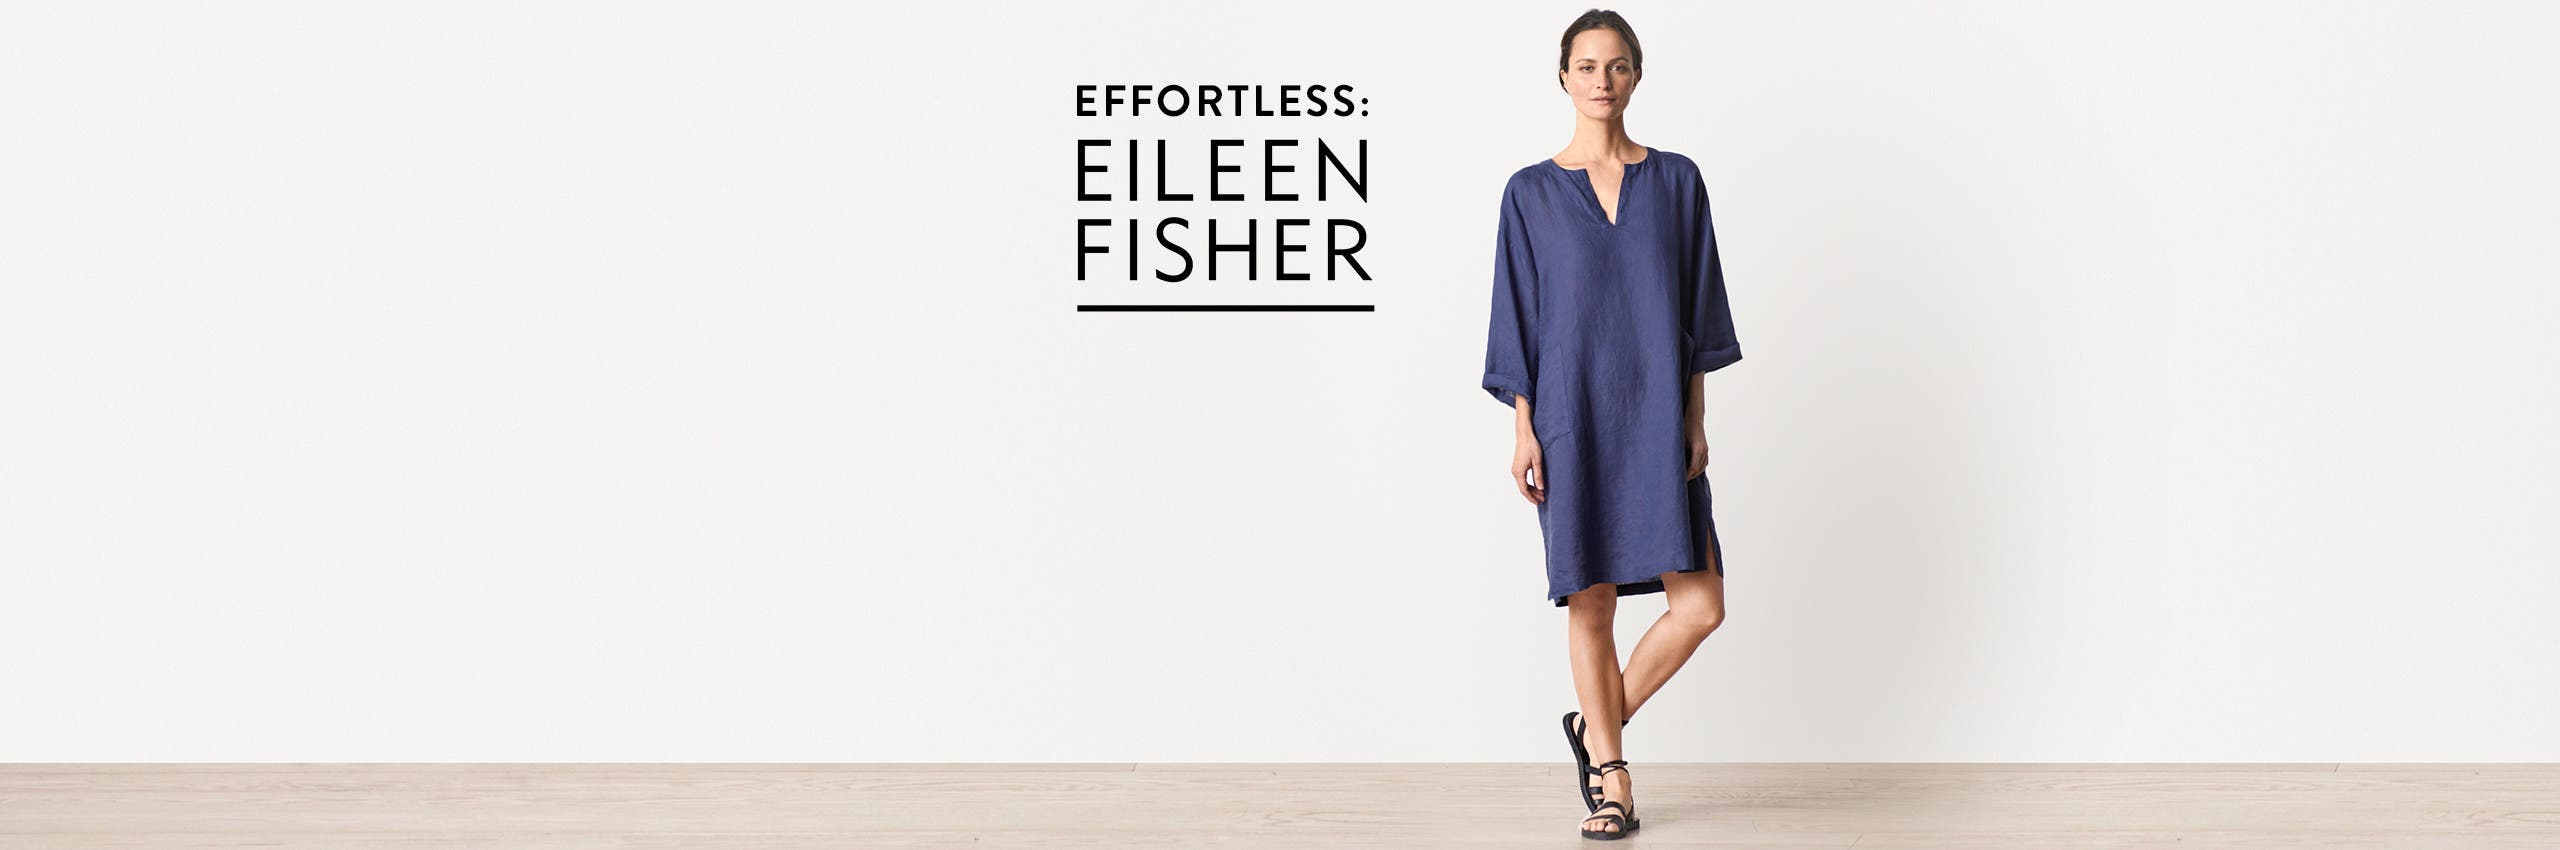 Effortless pieces from Eileen Fisher.